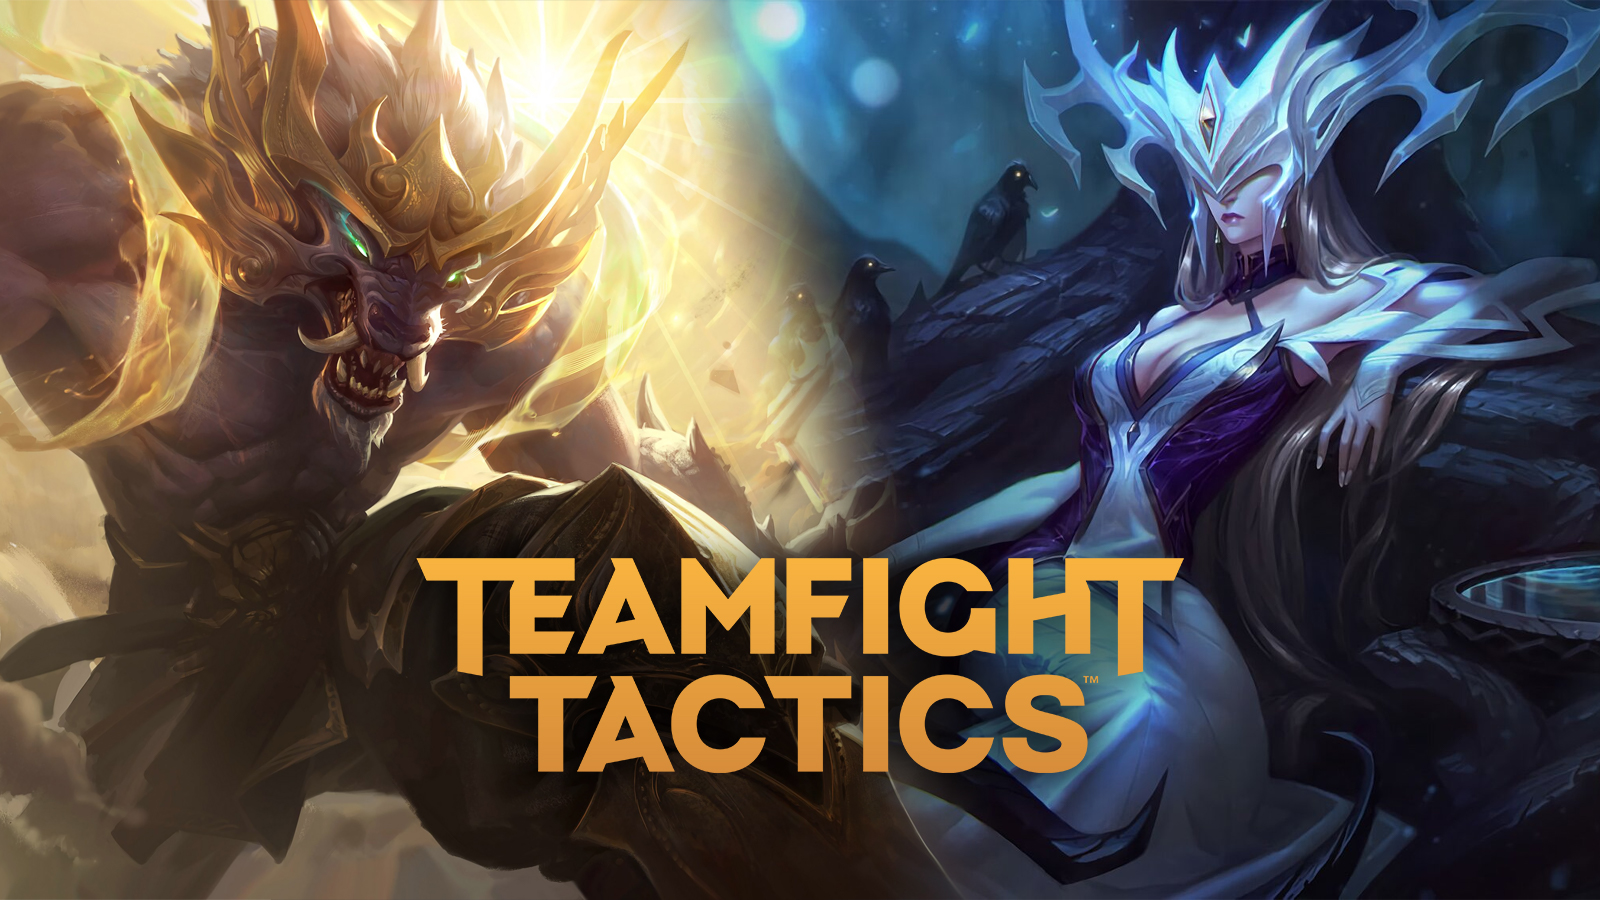 Warwick and Lissandra in TFT